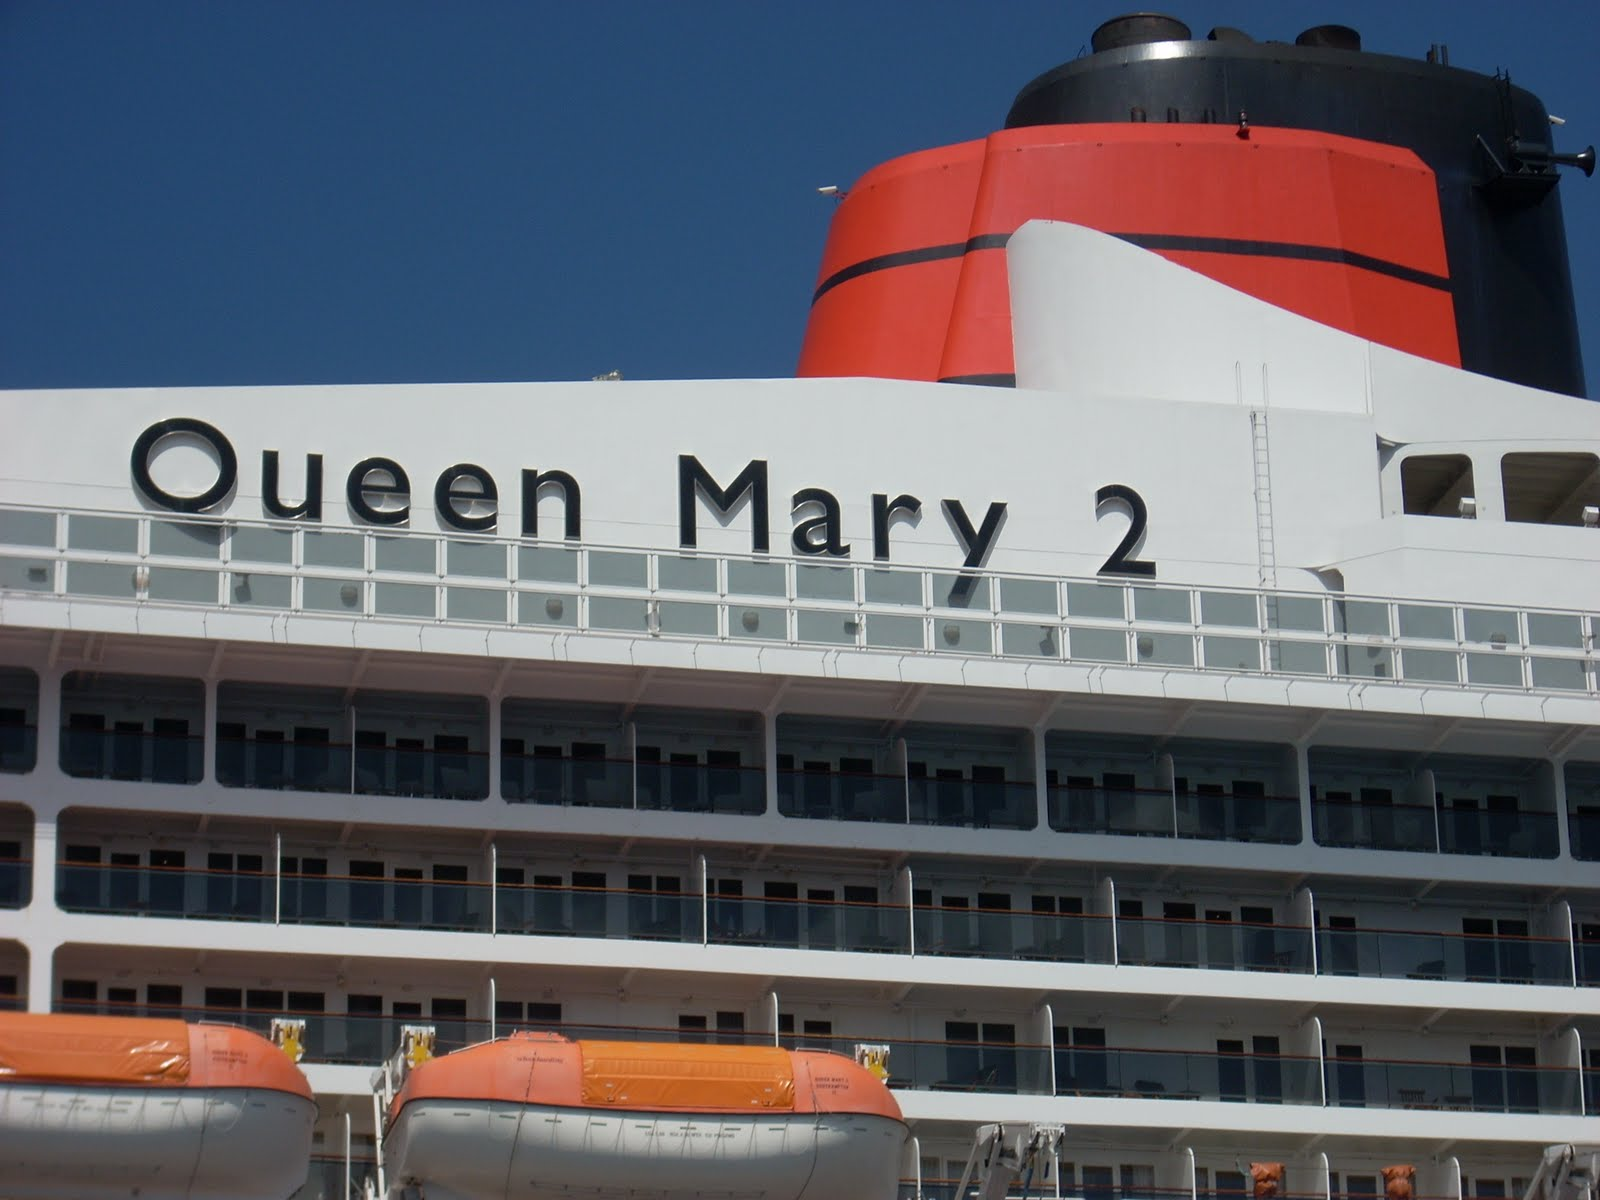 Queen Mary Ocean Liner History http://mroceanliner.blogspot.com/2010/06/july-1st-premiere-on-queen-mary-2.html